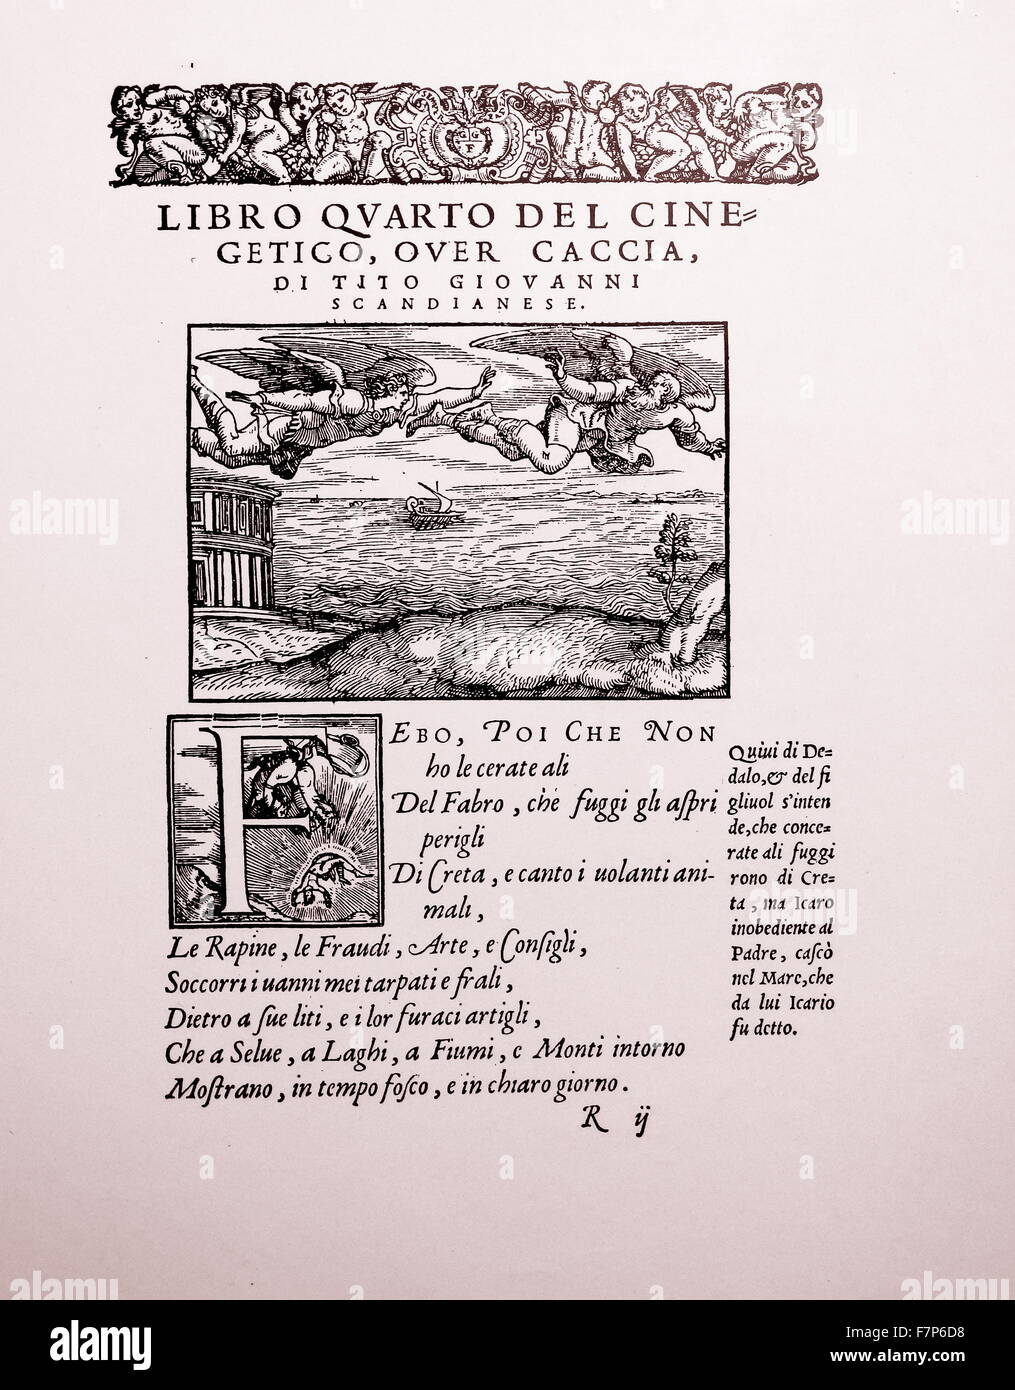 Daedalus and Icaros. From Lodovico Dolee Le Transformation Venice 1553. - Stock Image